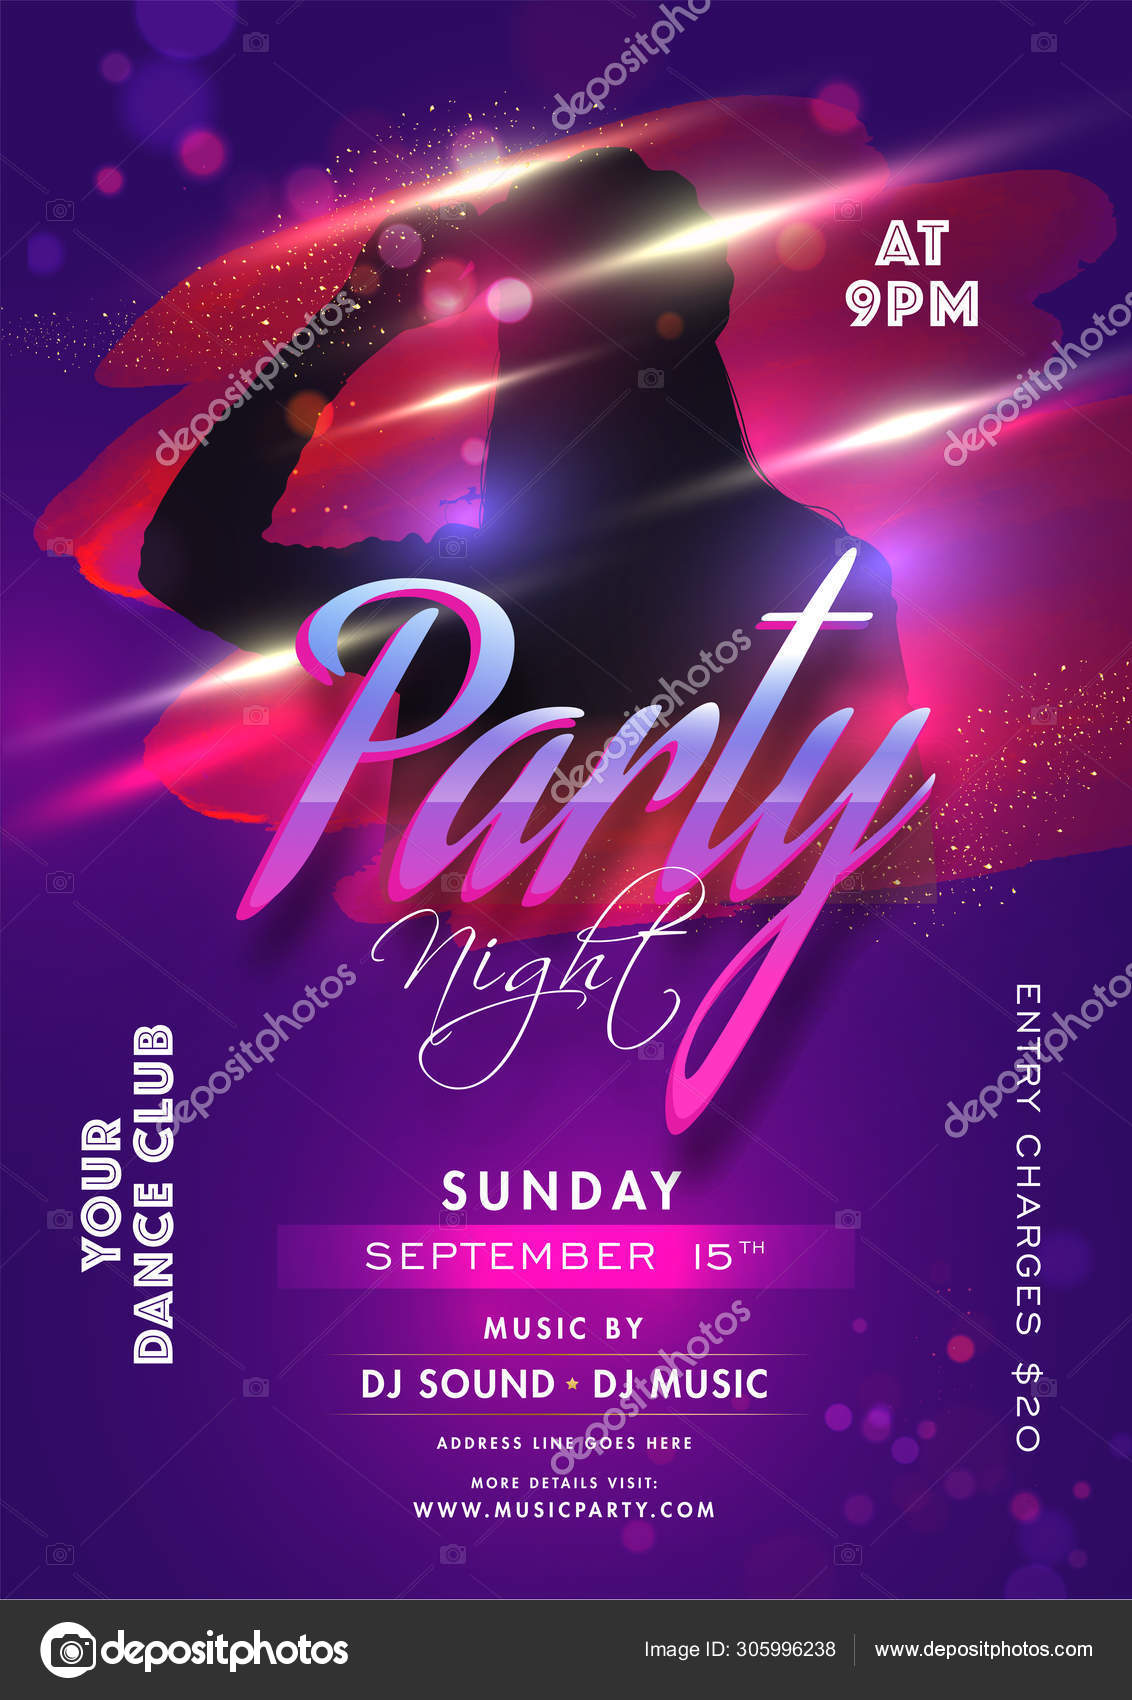 Night Party Invitation Card Design With Silhouette Female